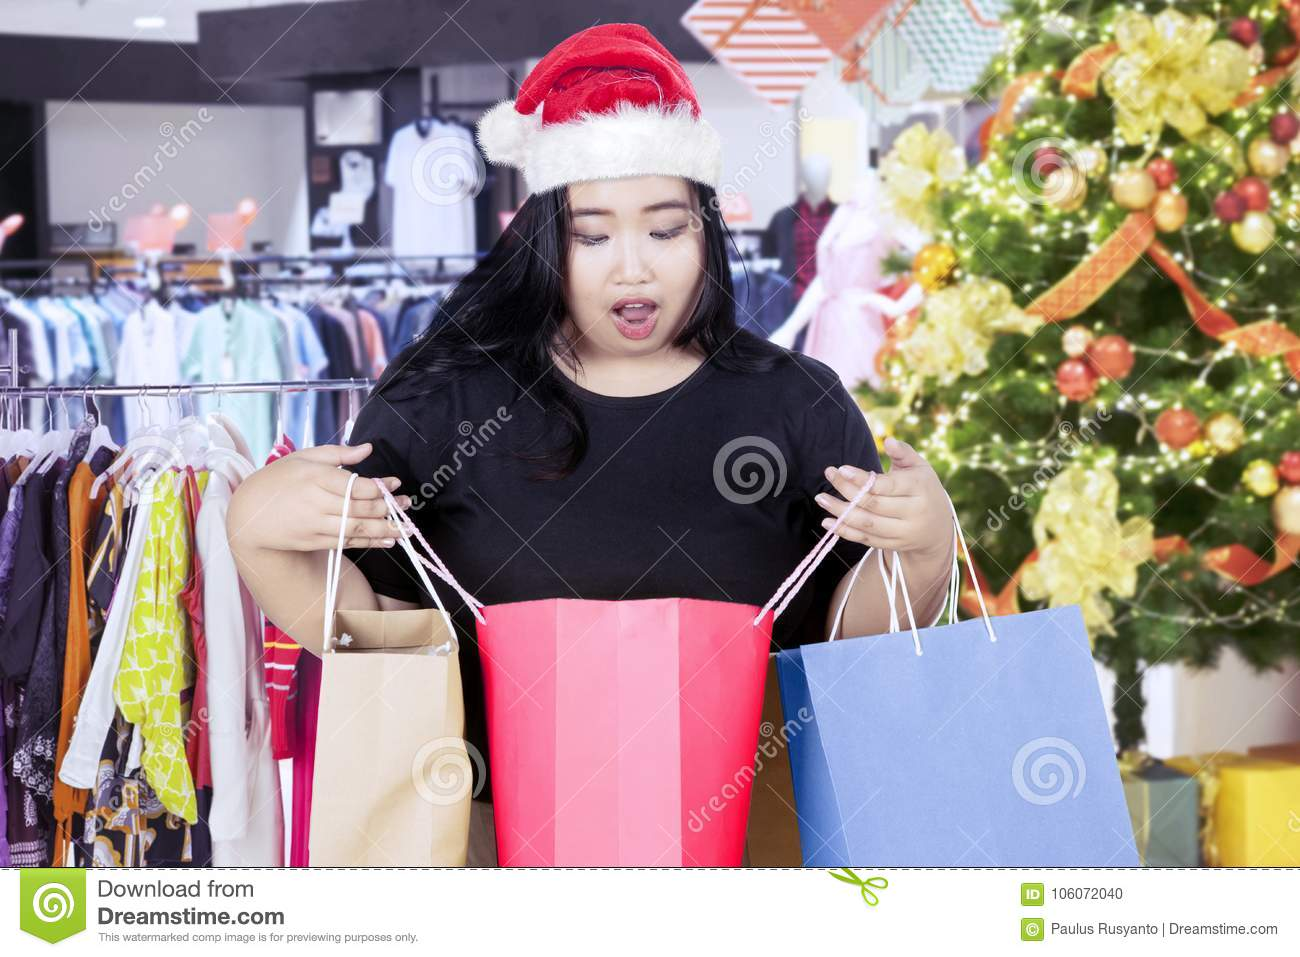 Shocked woman opening a shopping bag